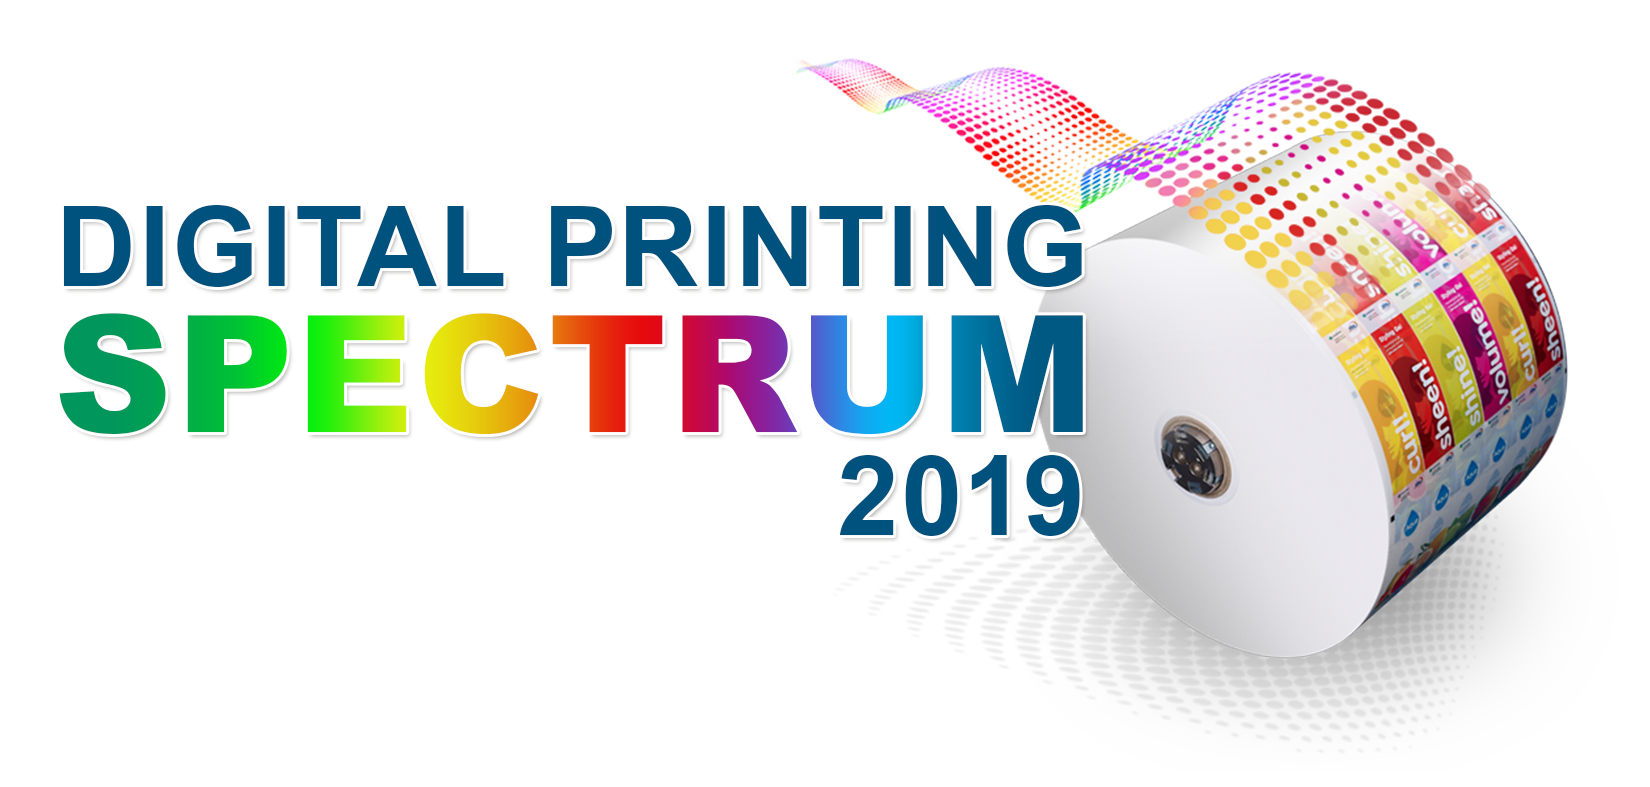 Domino Digital Printing Spectrum 2019